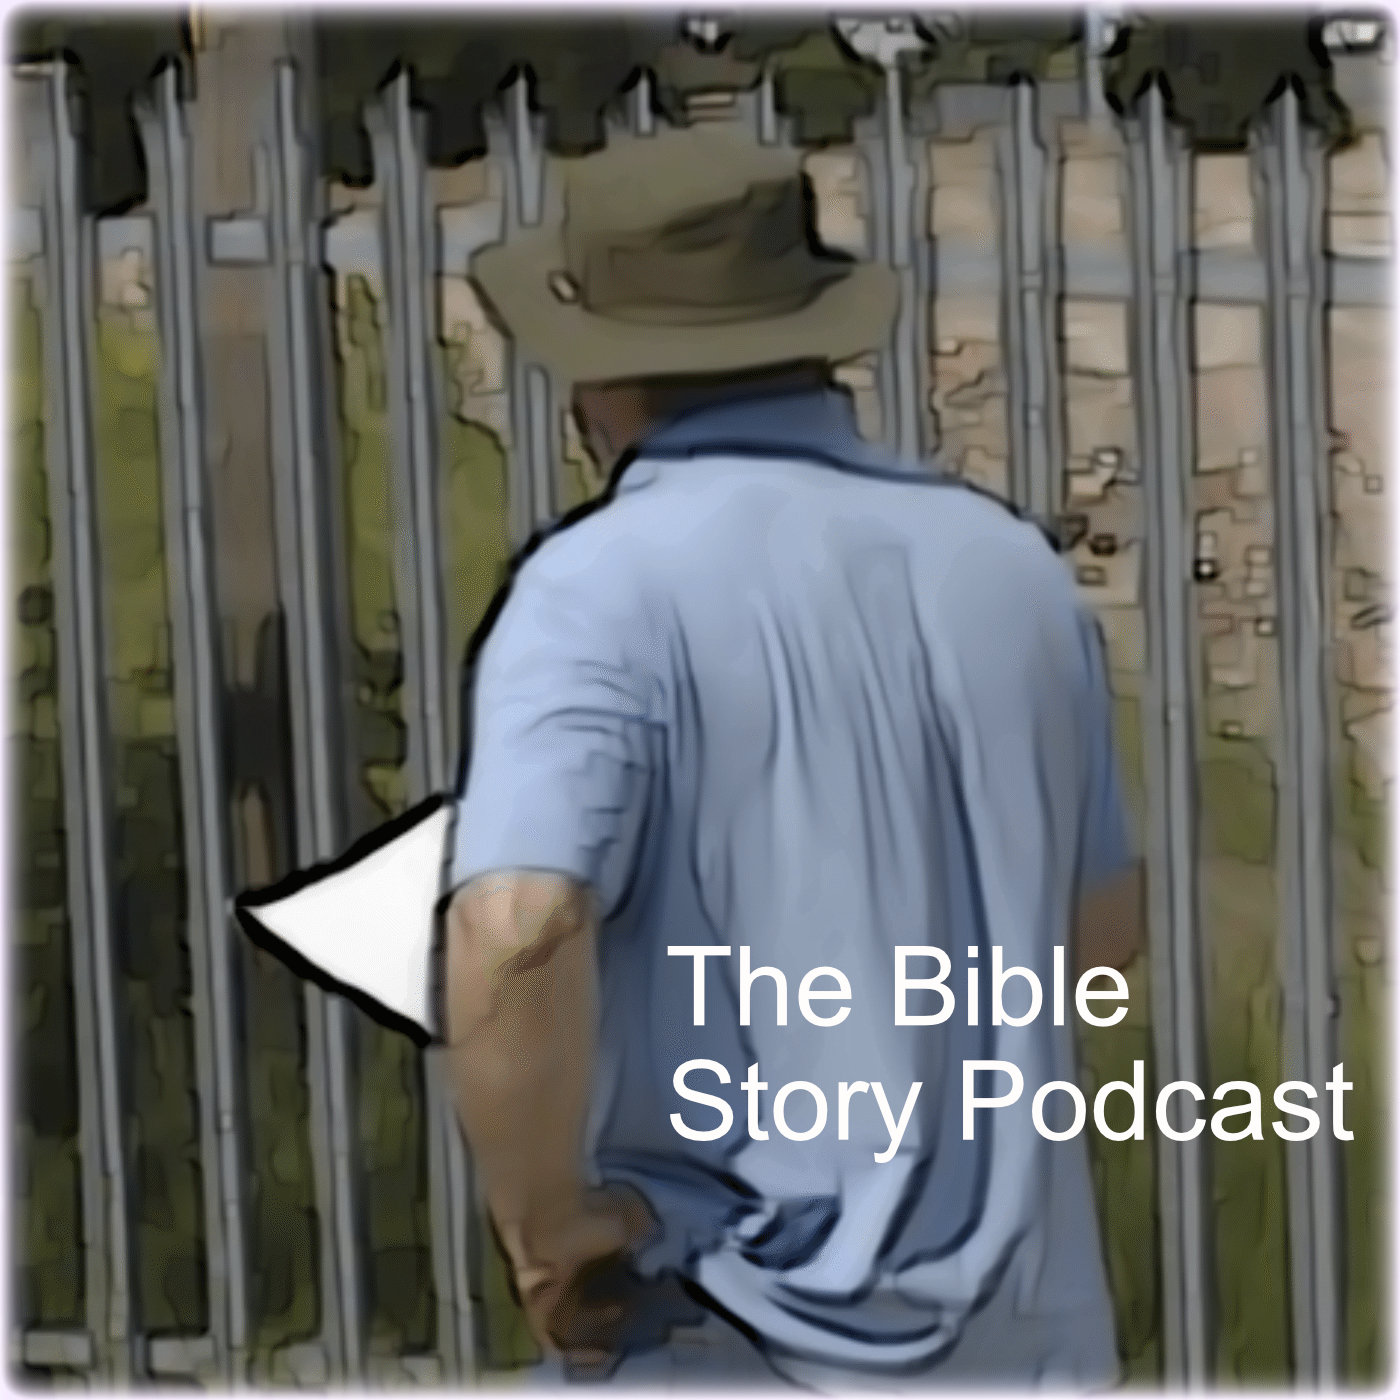 Artwork for podcast The Bible Story Podcast